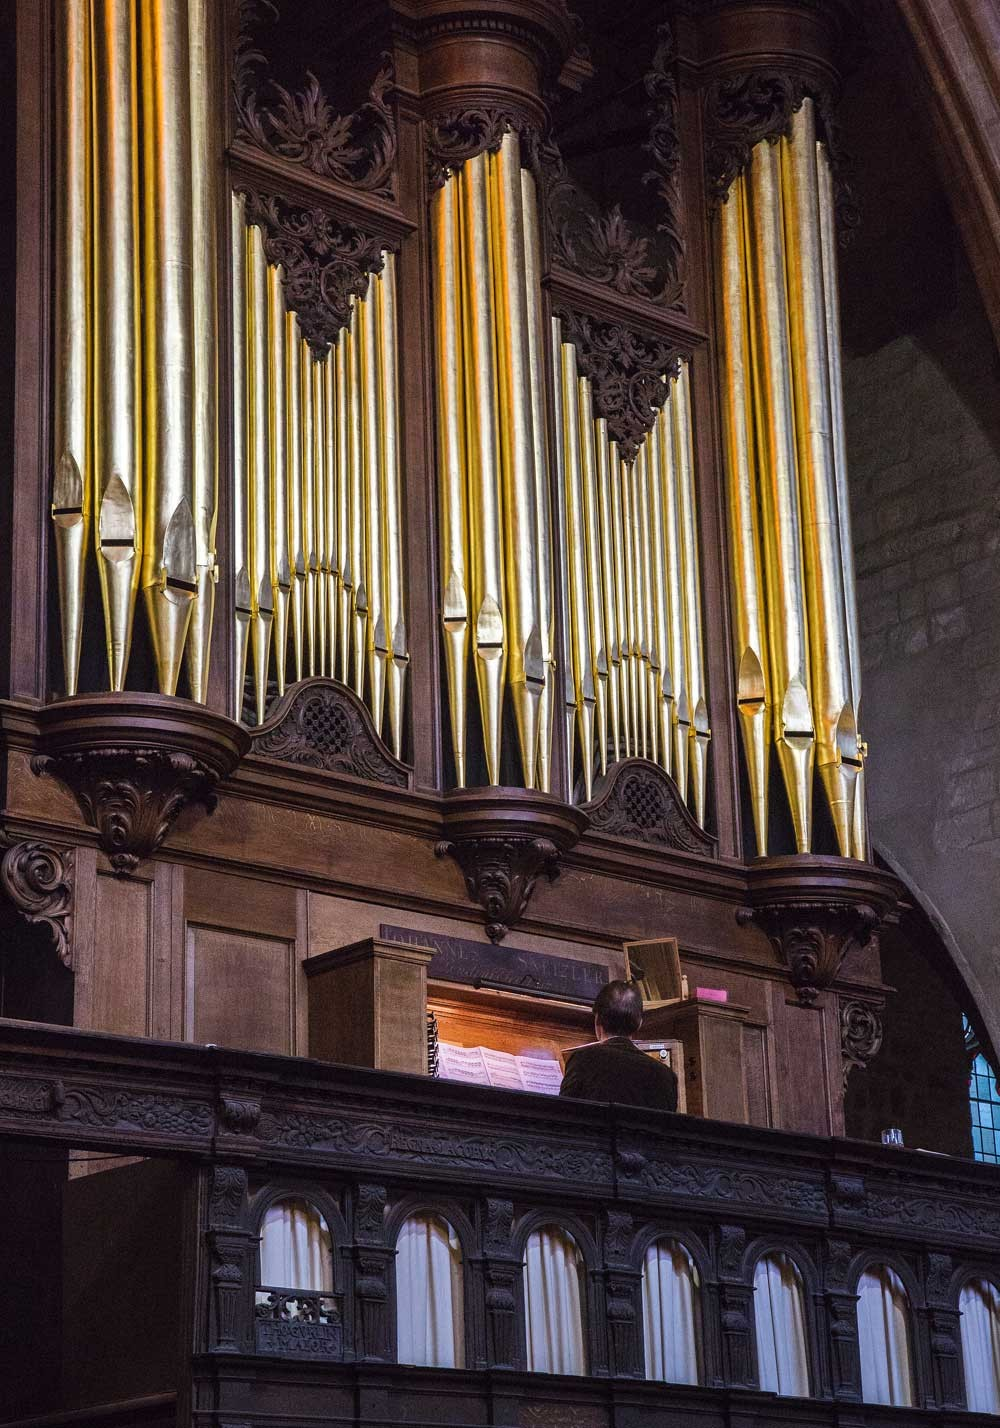 The famous Snetzler organ at The Minster in King's Lynn